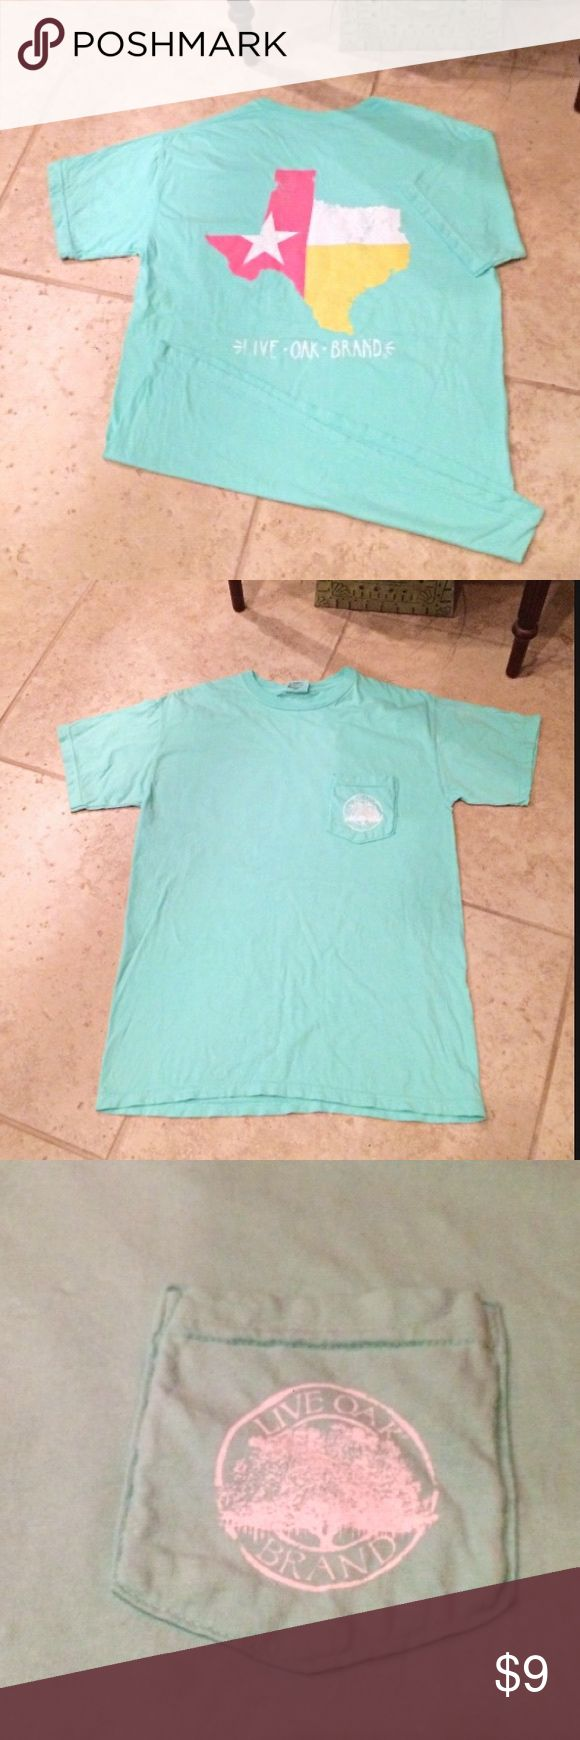 NWOT Live Oak Brand Texas Tee Mint colored roundneck tee with Texas outline on back. Pocket on front. Tops Tees - Short Sleeve